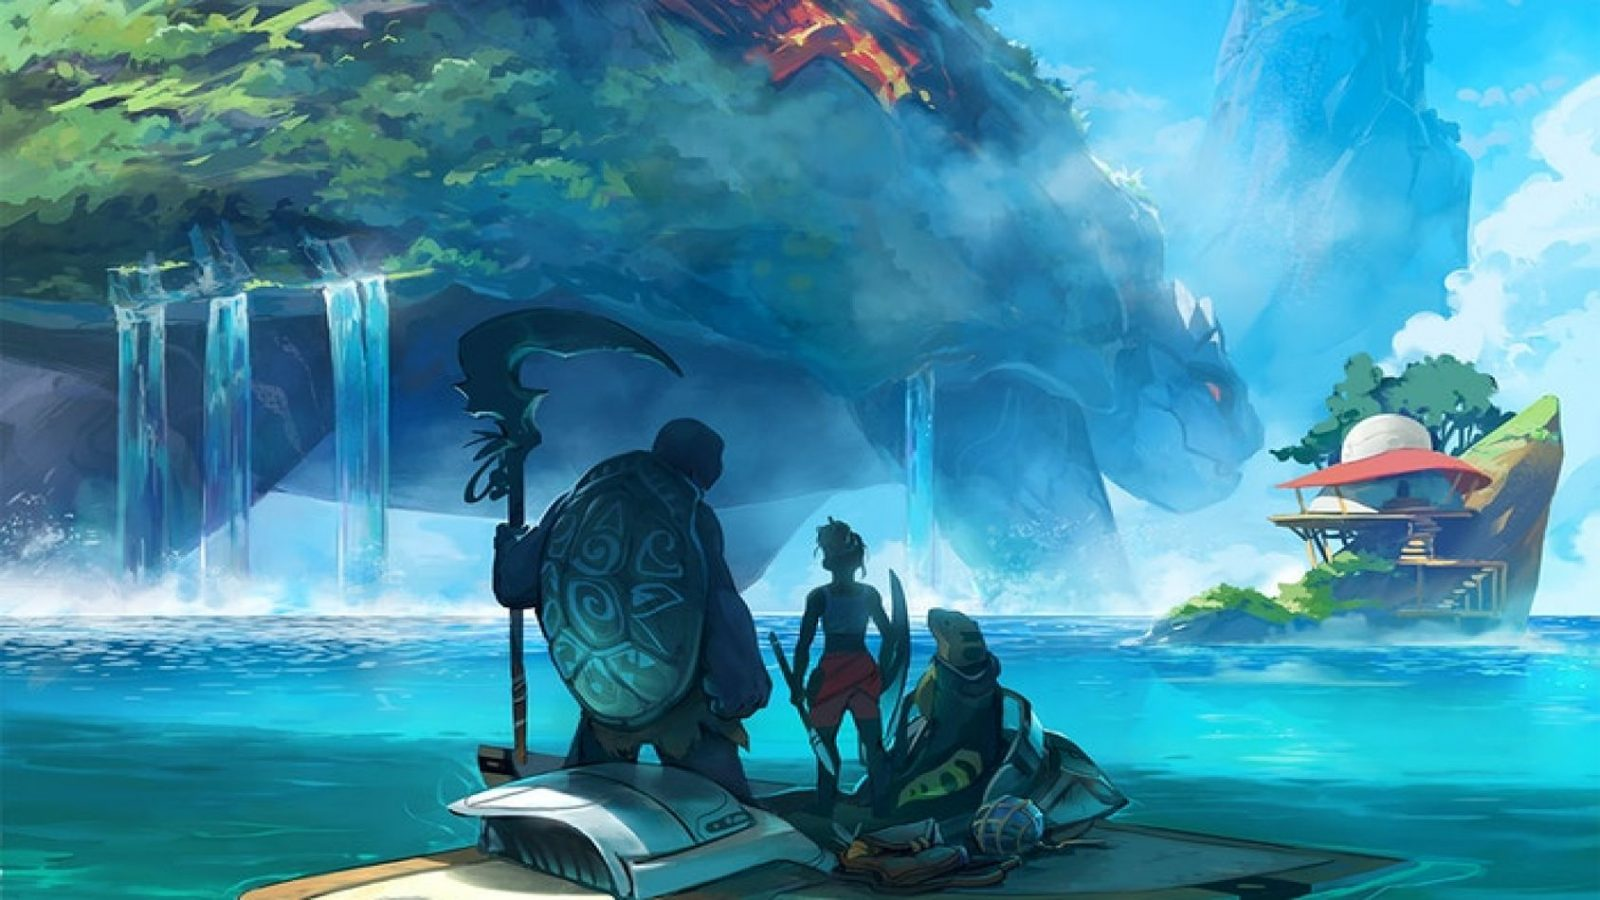 An image from Tidal Blades, showing three figures on a boat in a fantasy archipelago setting.